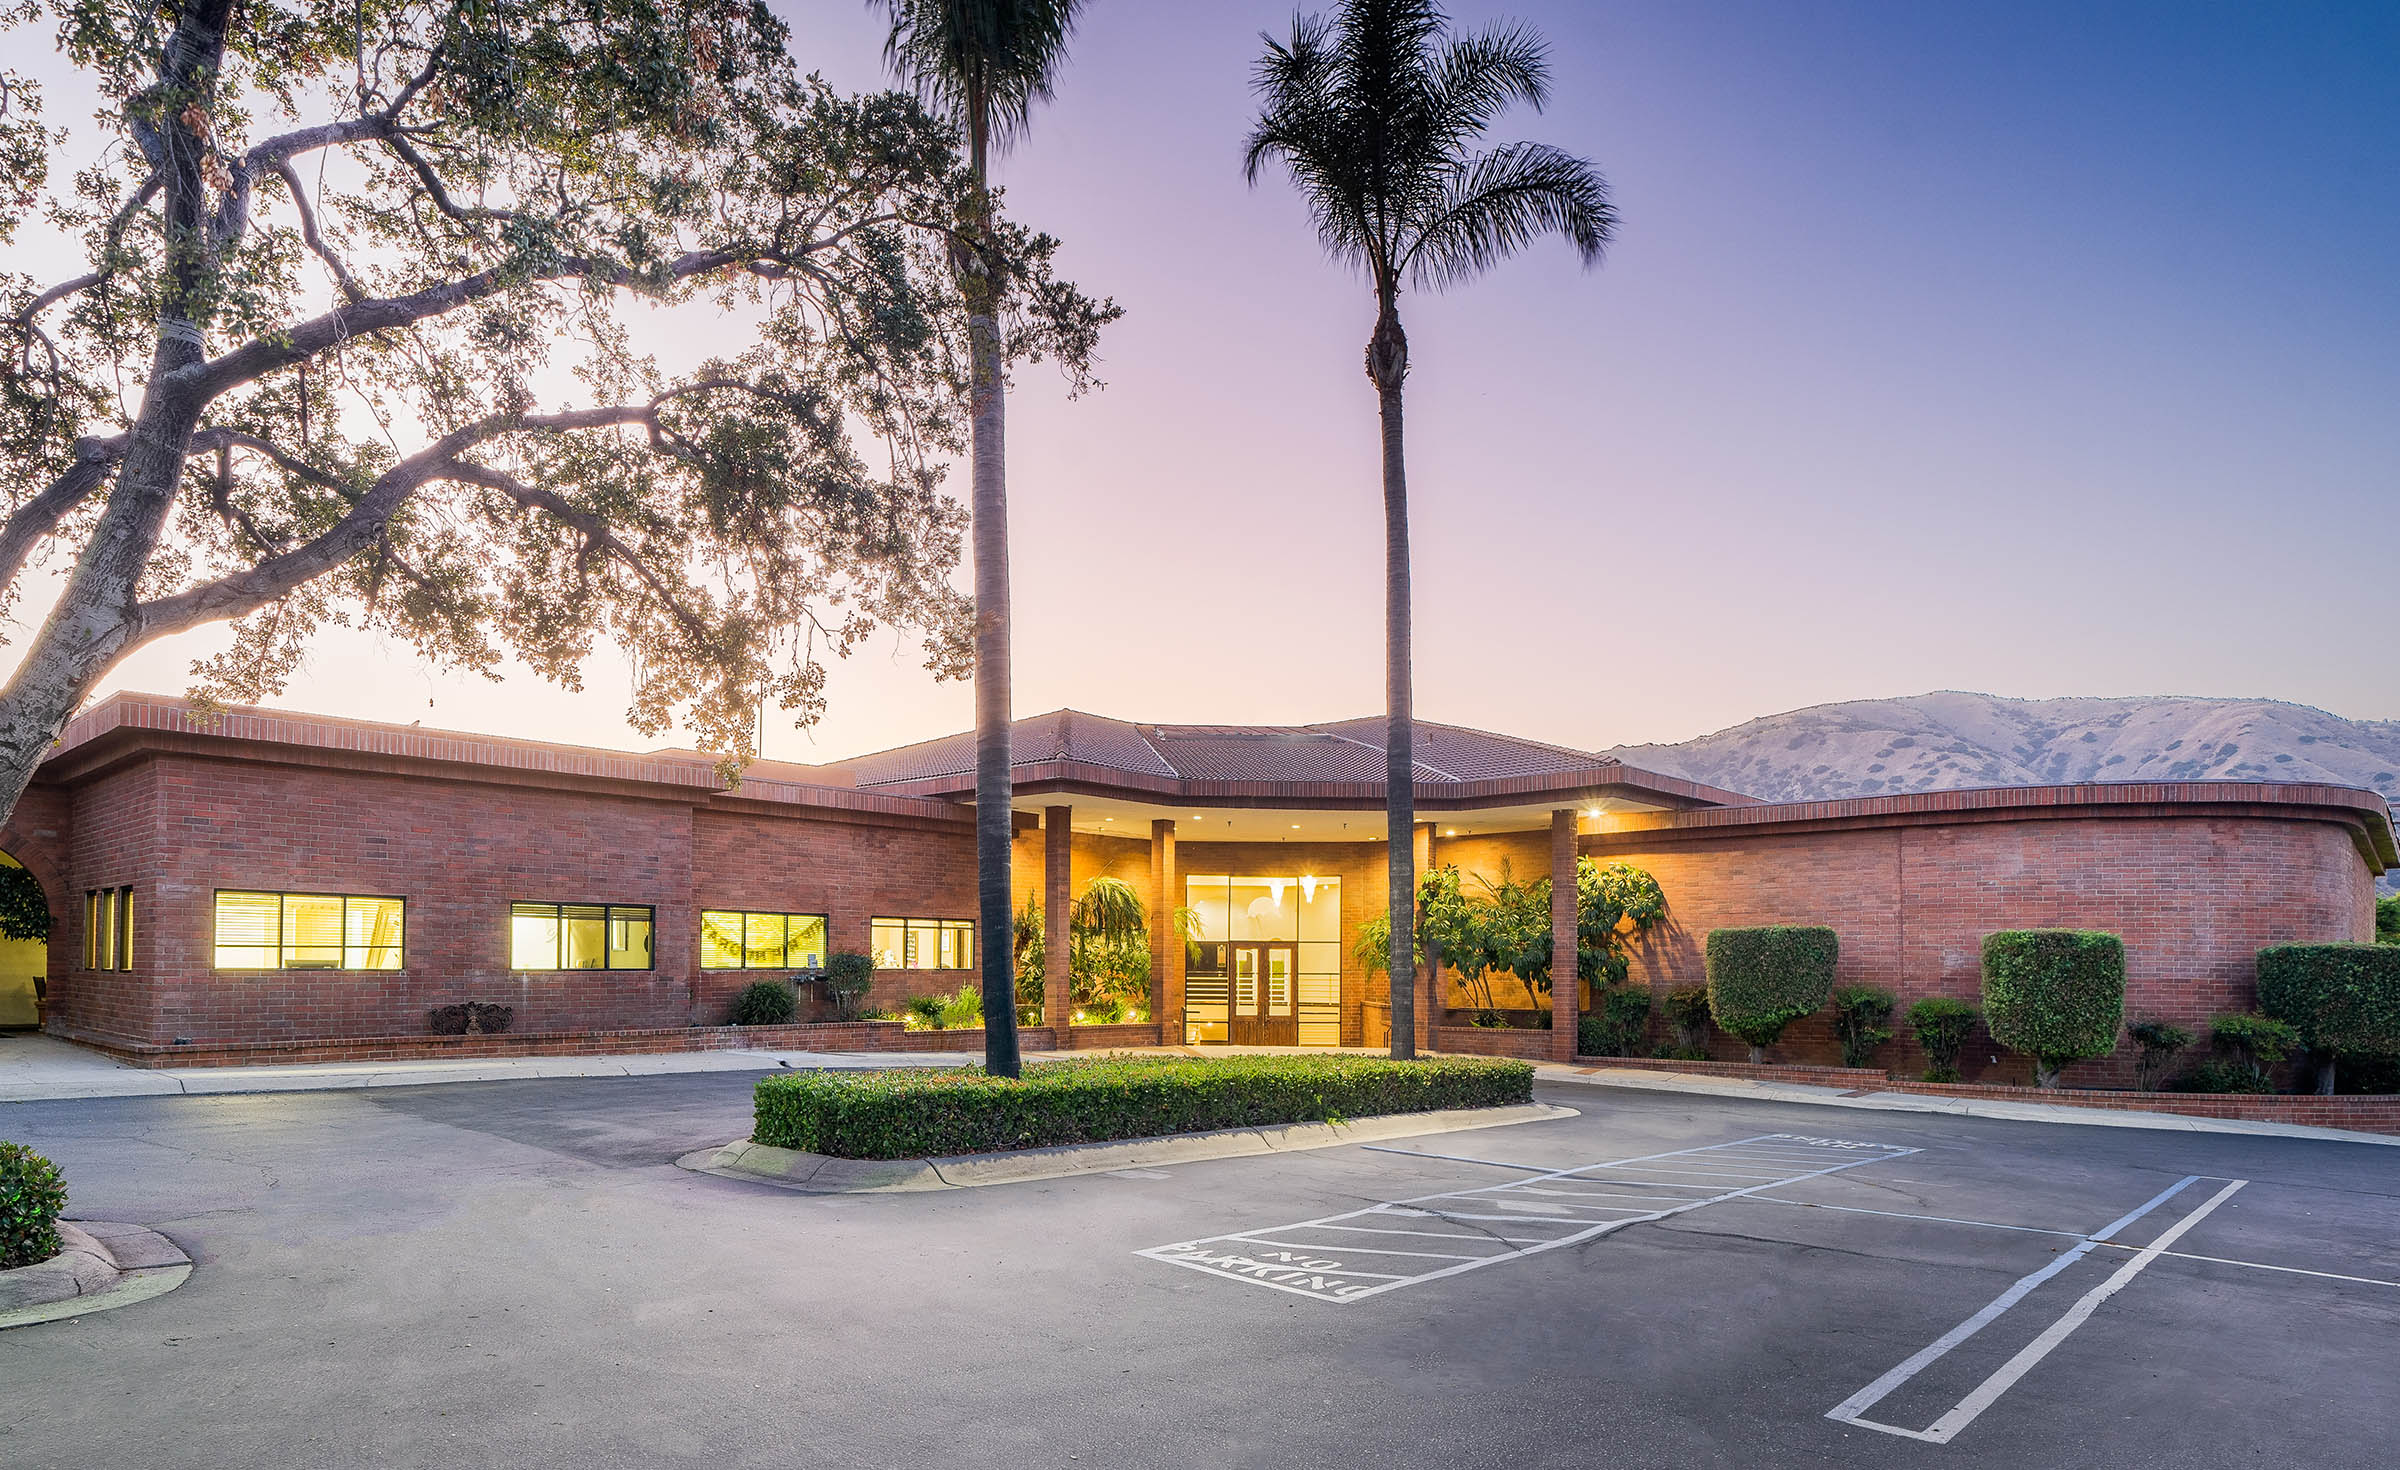 Venue exterior at dusk - Sierra La Verne - La Verne, California - Claremont Area - Los Angeles County - Wedgewood Weddings